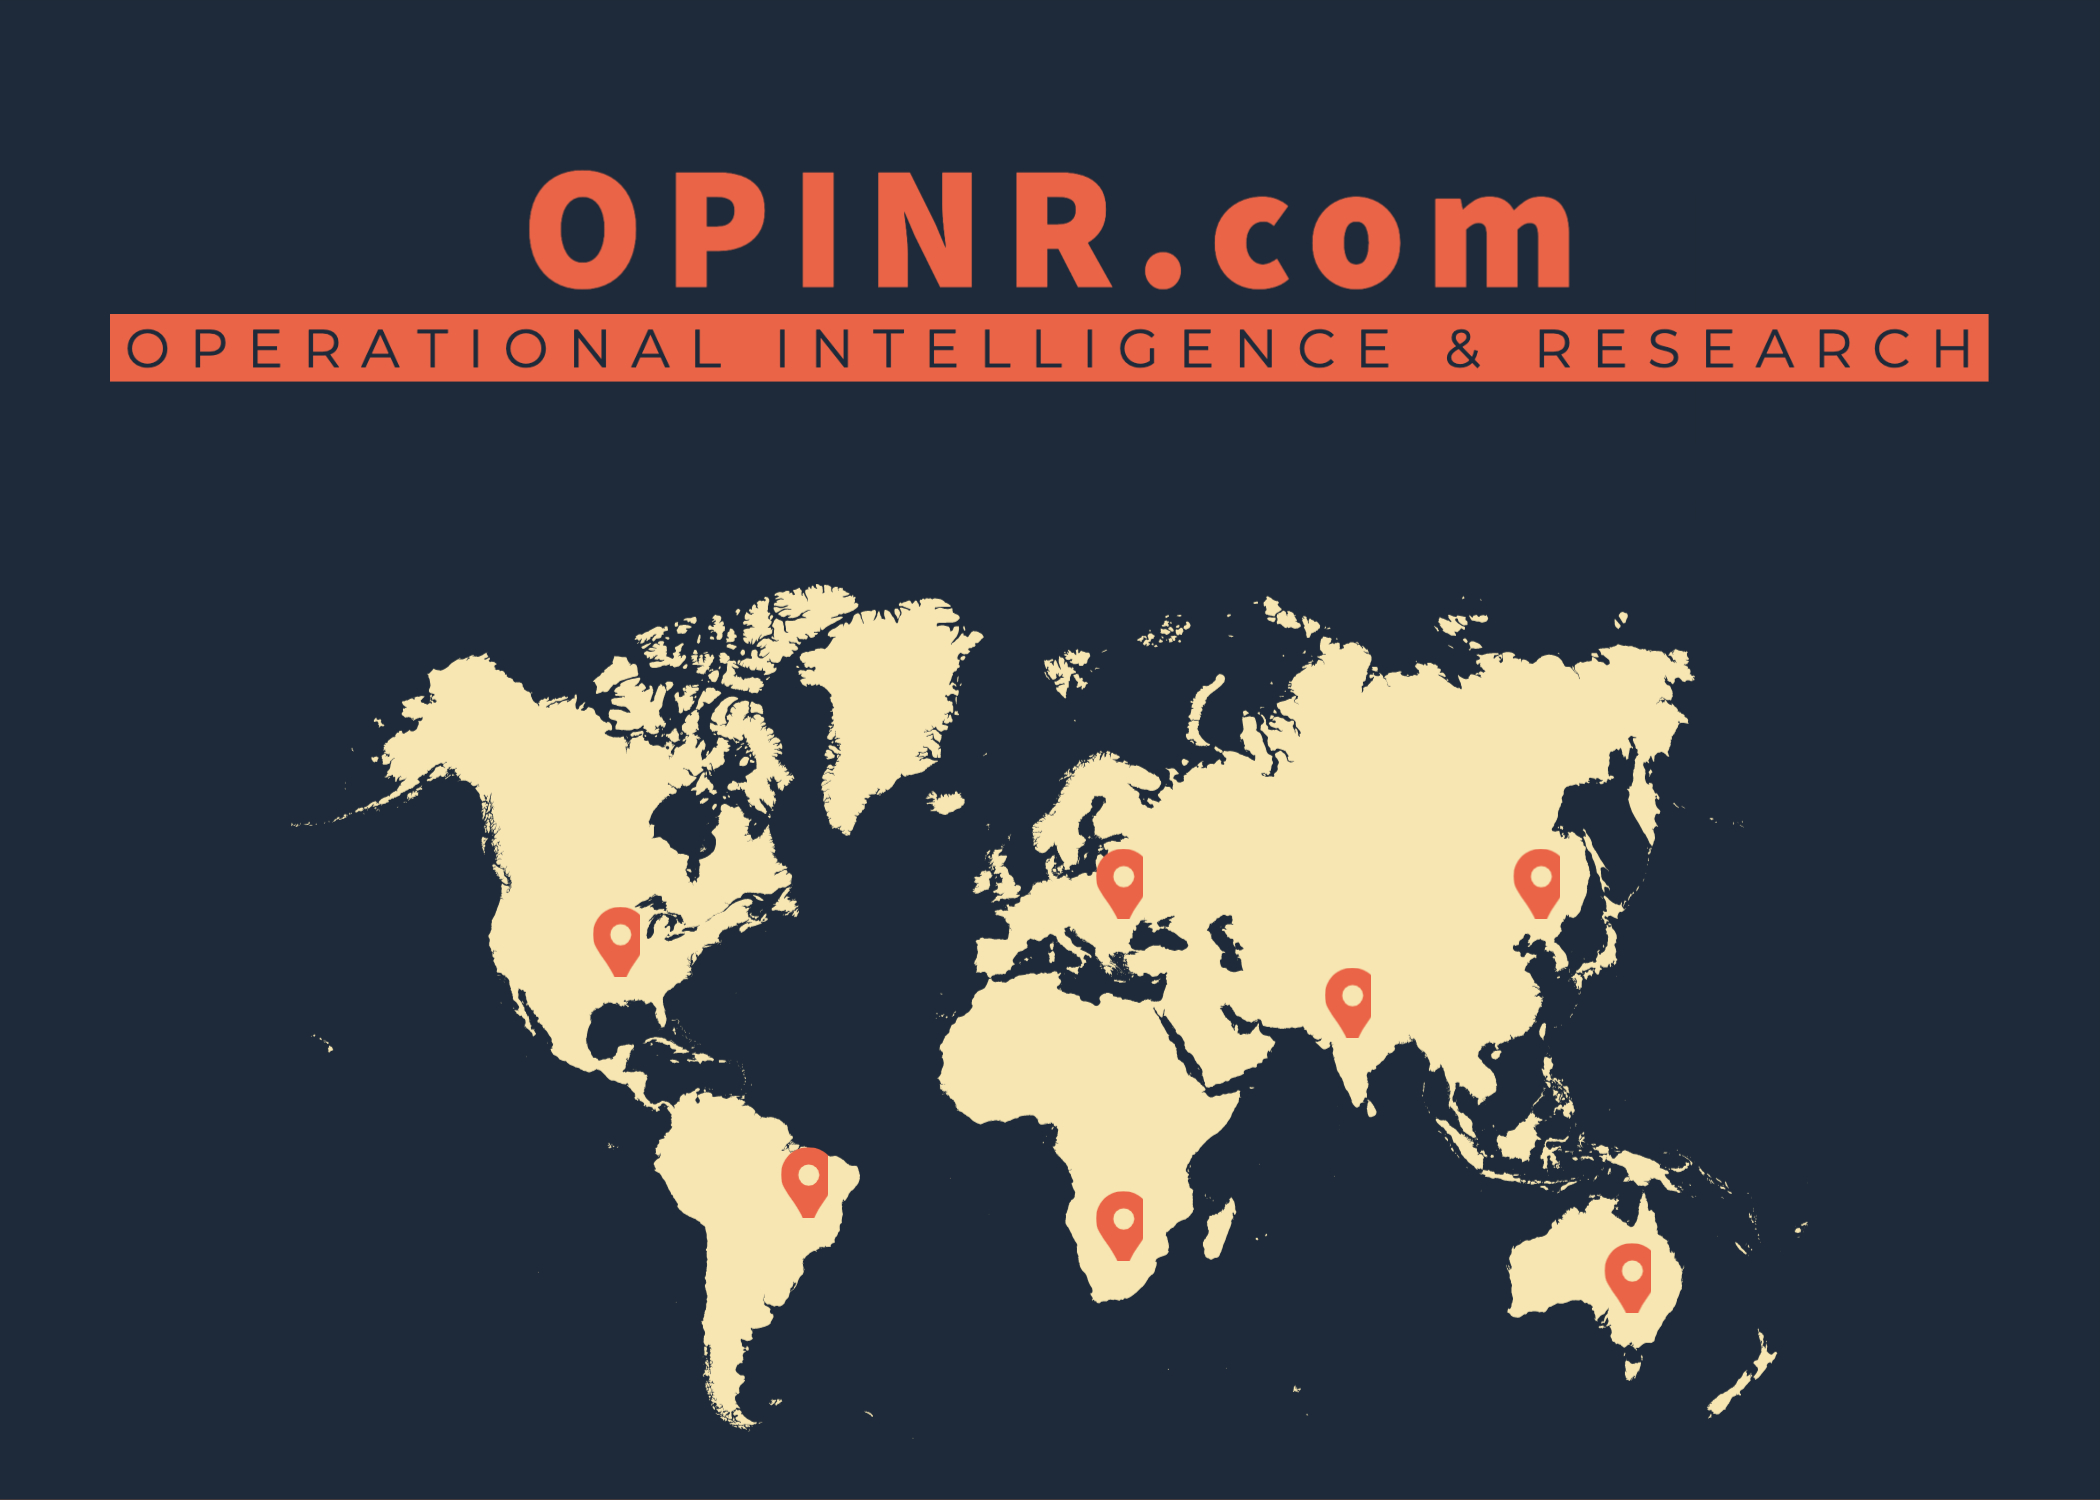 OPINR stands for Operational Intelligence and Research